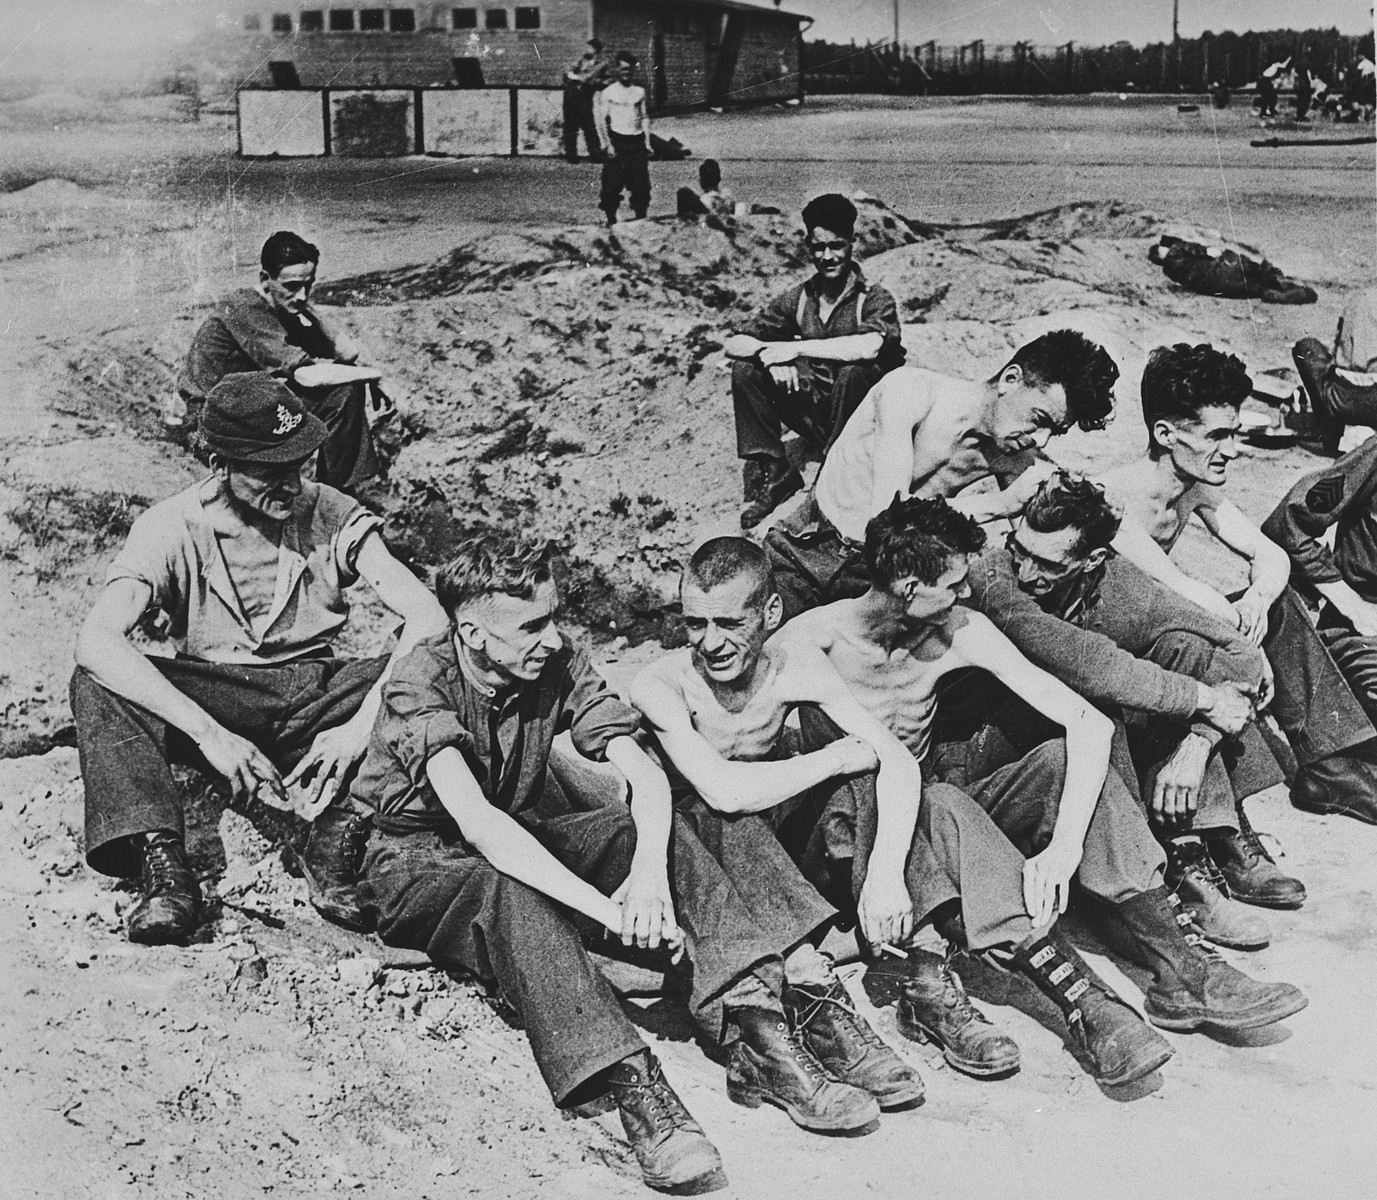 """Newly liberated British POWs sit on the grounds of Stalag XIB [Eleven B], a camp outside Fallingbostel.  The original caption reads, """"On April 16th the first Prisoner of War Camp containing British prisoners was liberated by advancing tanks of the British Armoured Brigade.  The camp is Stalag 11B  just south of Fallingbostel, which is about 10 miles southwest of Soltau.""""  The liberated prisoner at the back left is probably  Vincent J. Riccio, an American POW and Technical Sergeant ,flight engineer/gunner in the US Army Air Corps.  After his airplane was disabled, he was sent to Stalag Luft IV and then taken on a forced march to Fallingbostel where British prisoners helped care for him."""